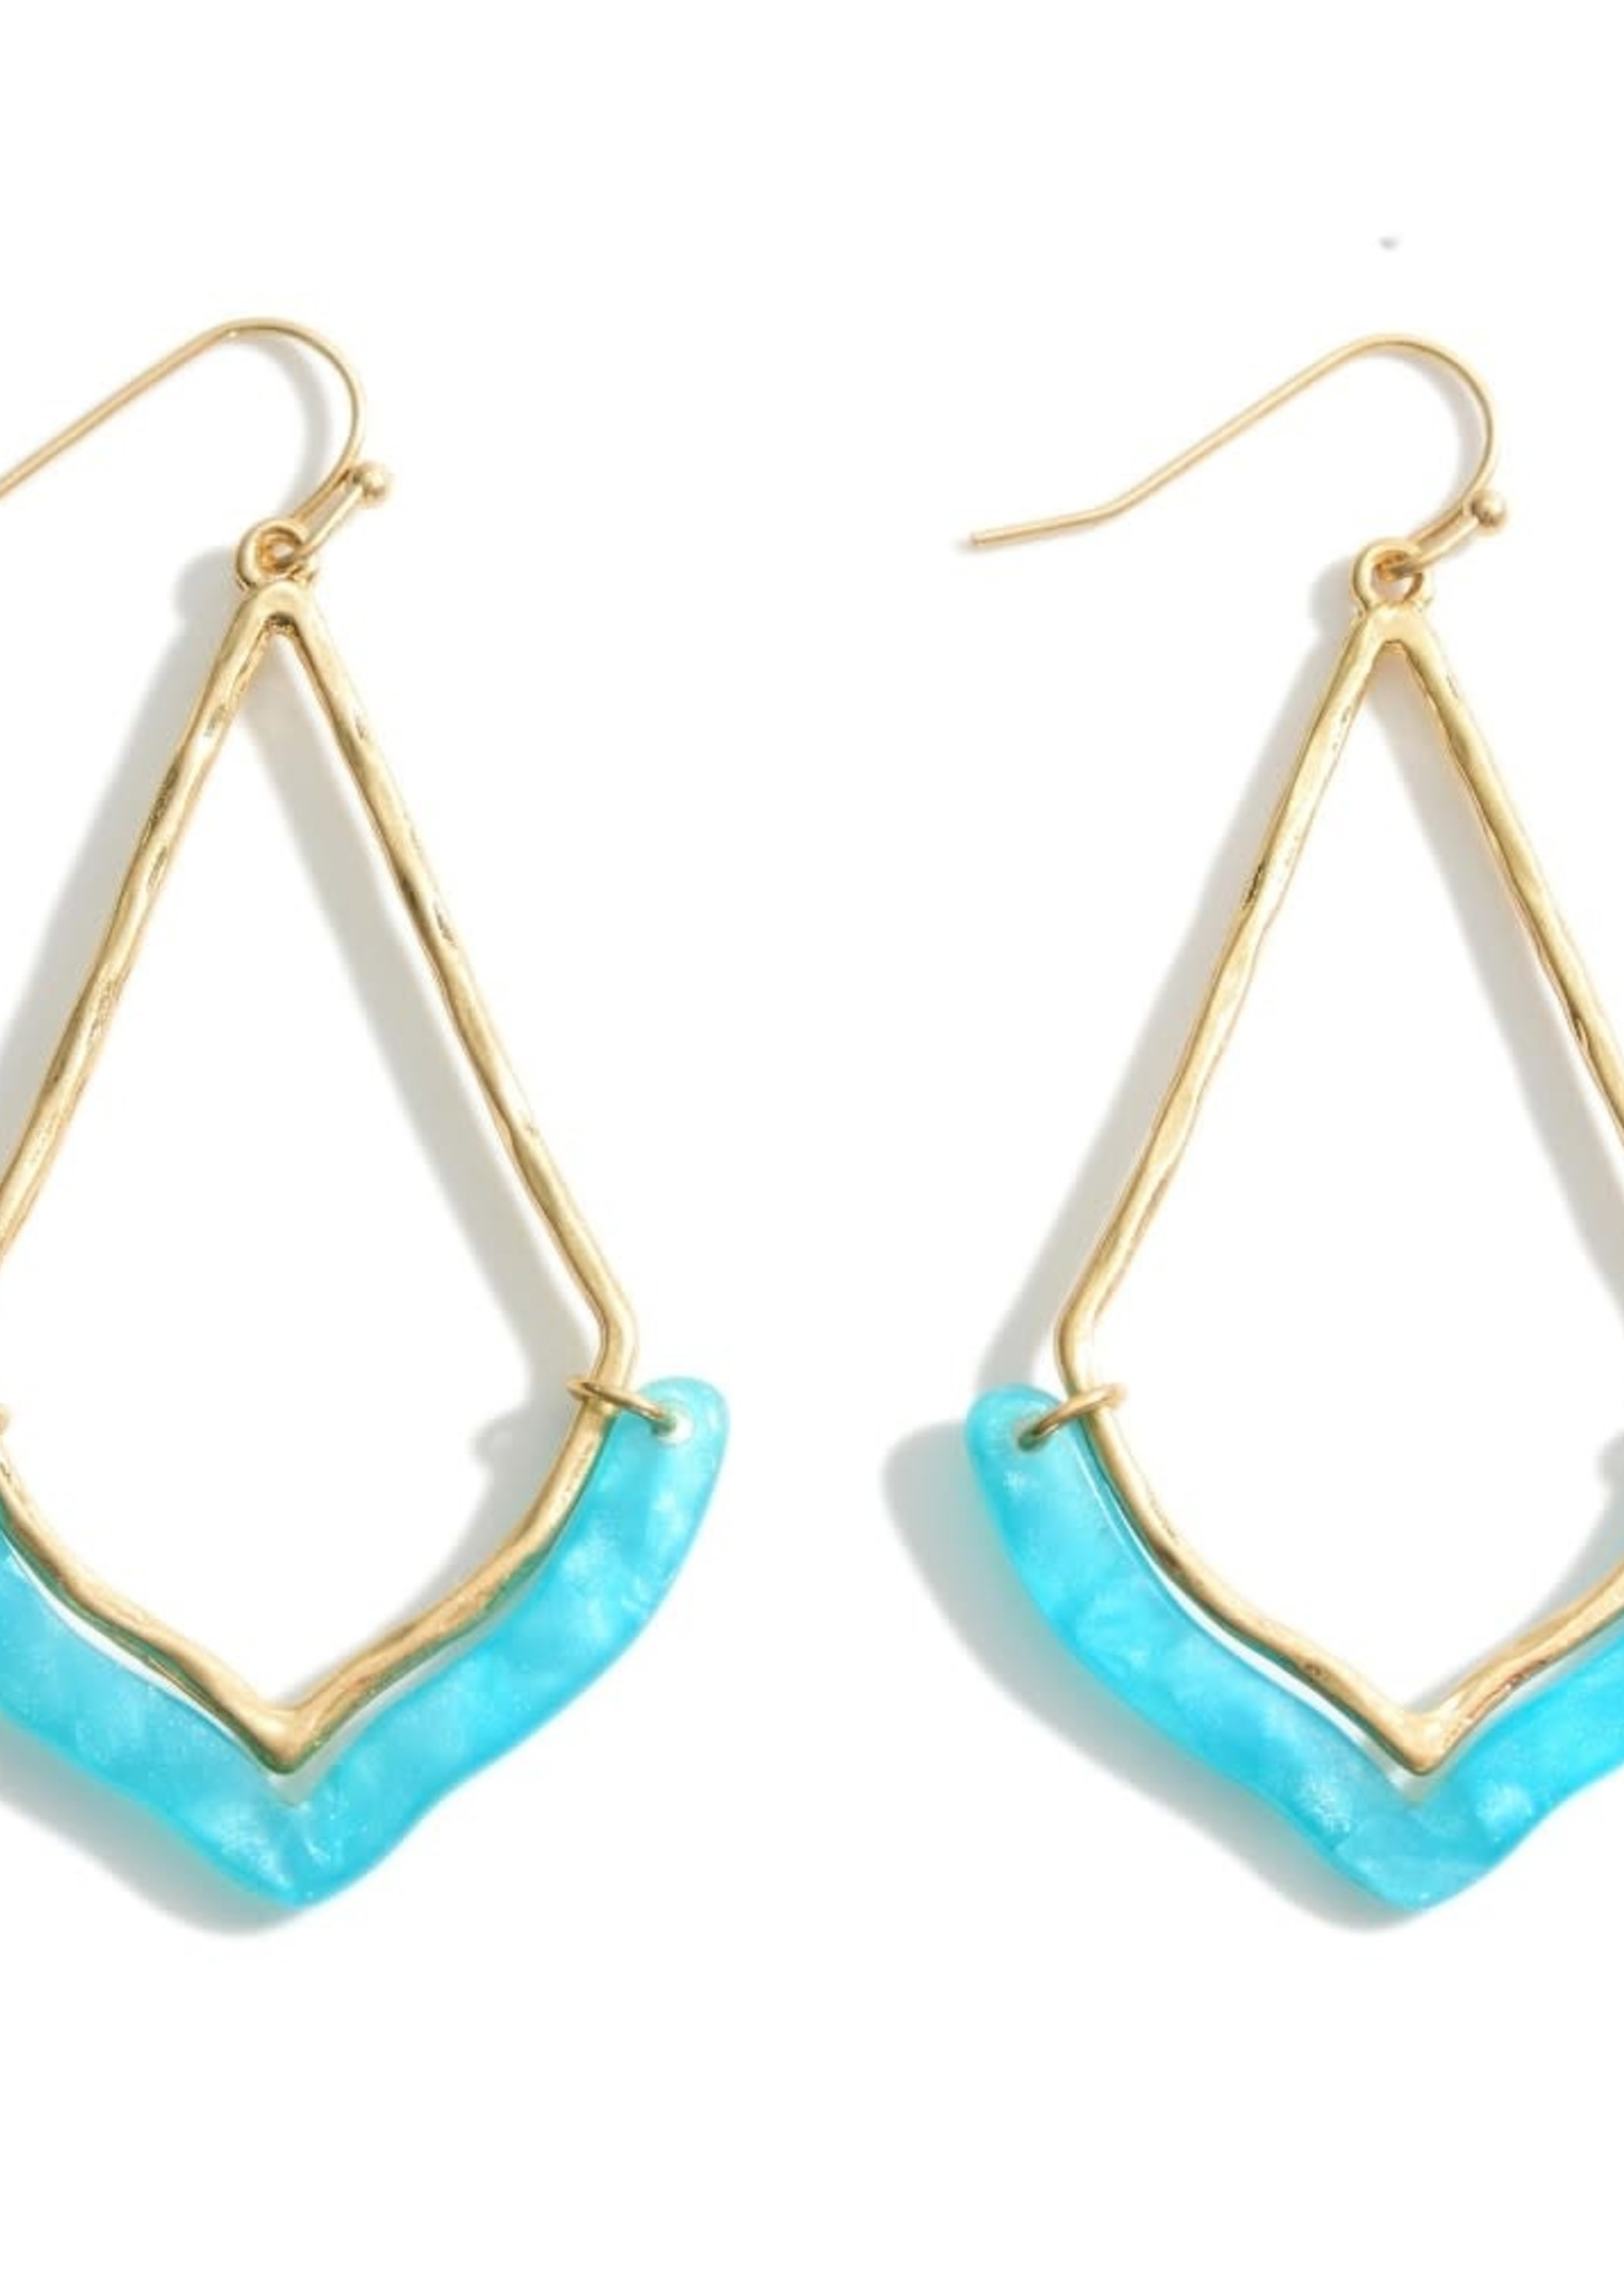 Gold Earrings Featuring Resin Accents